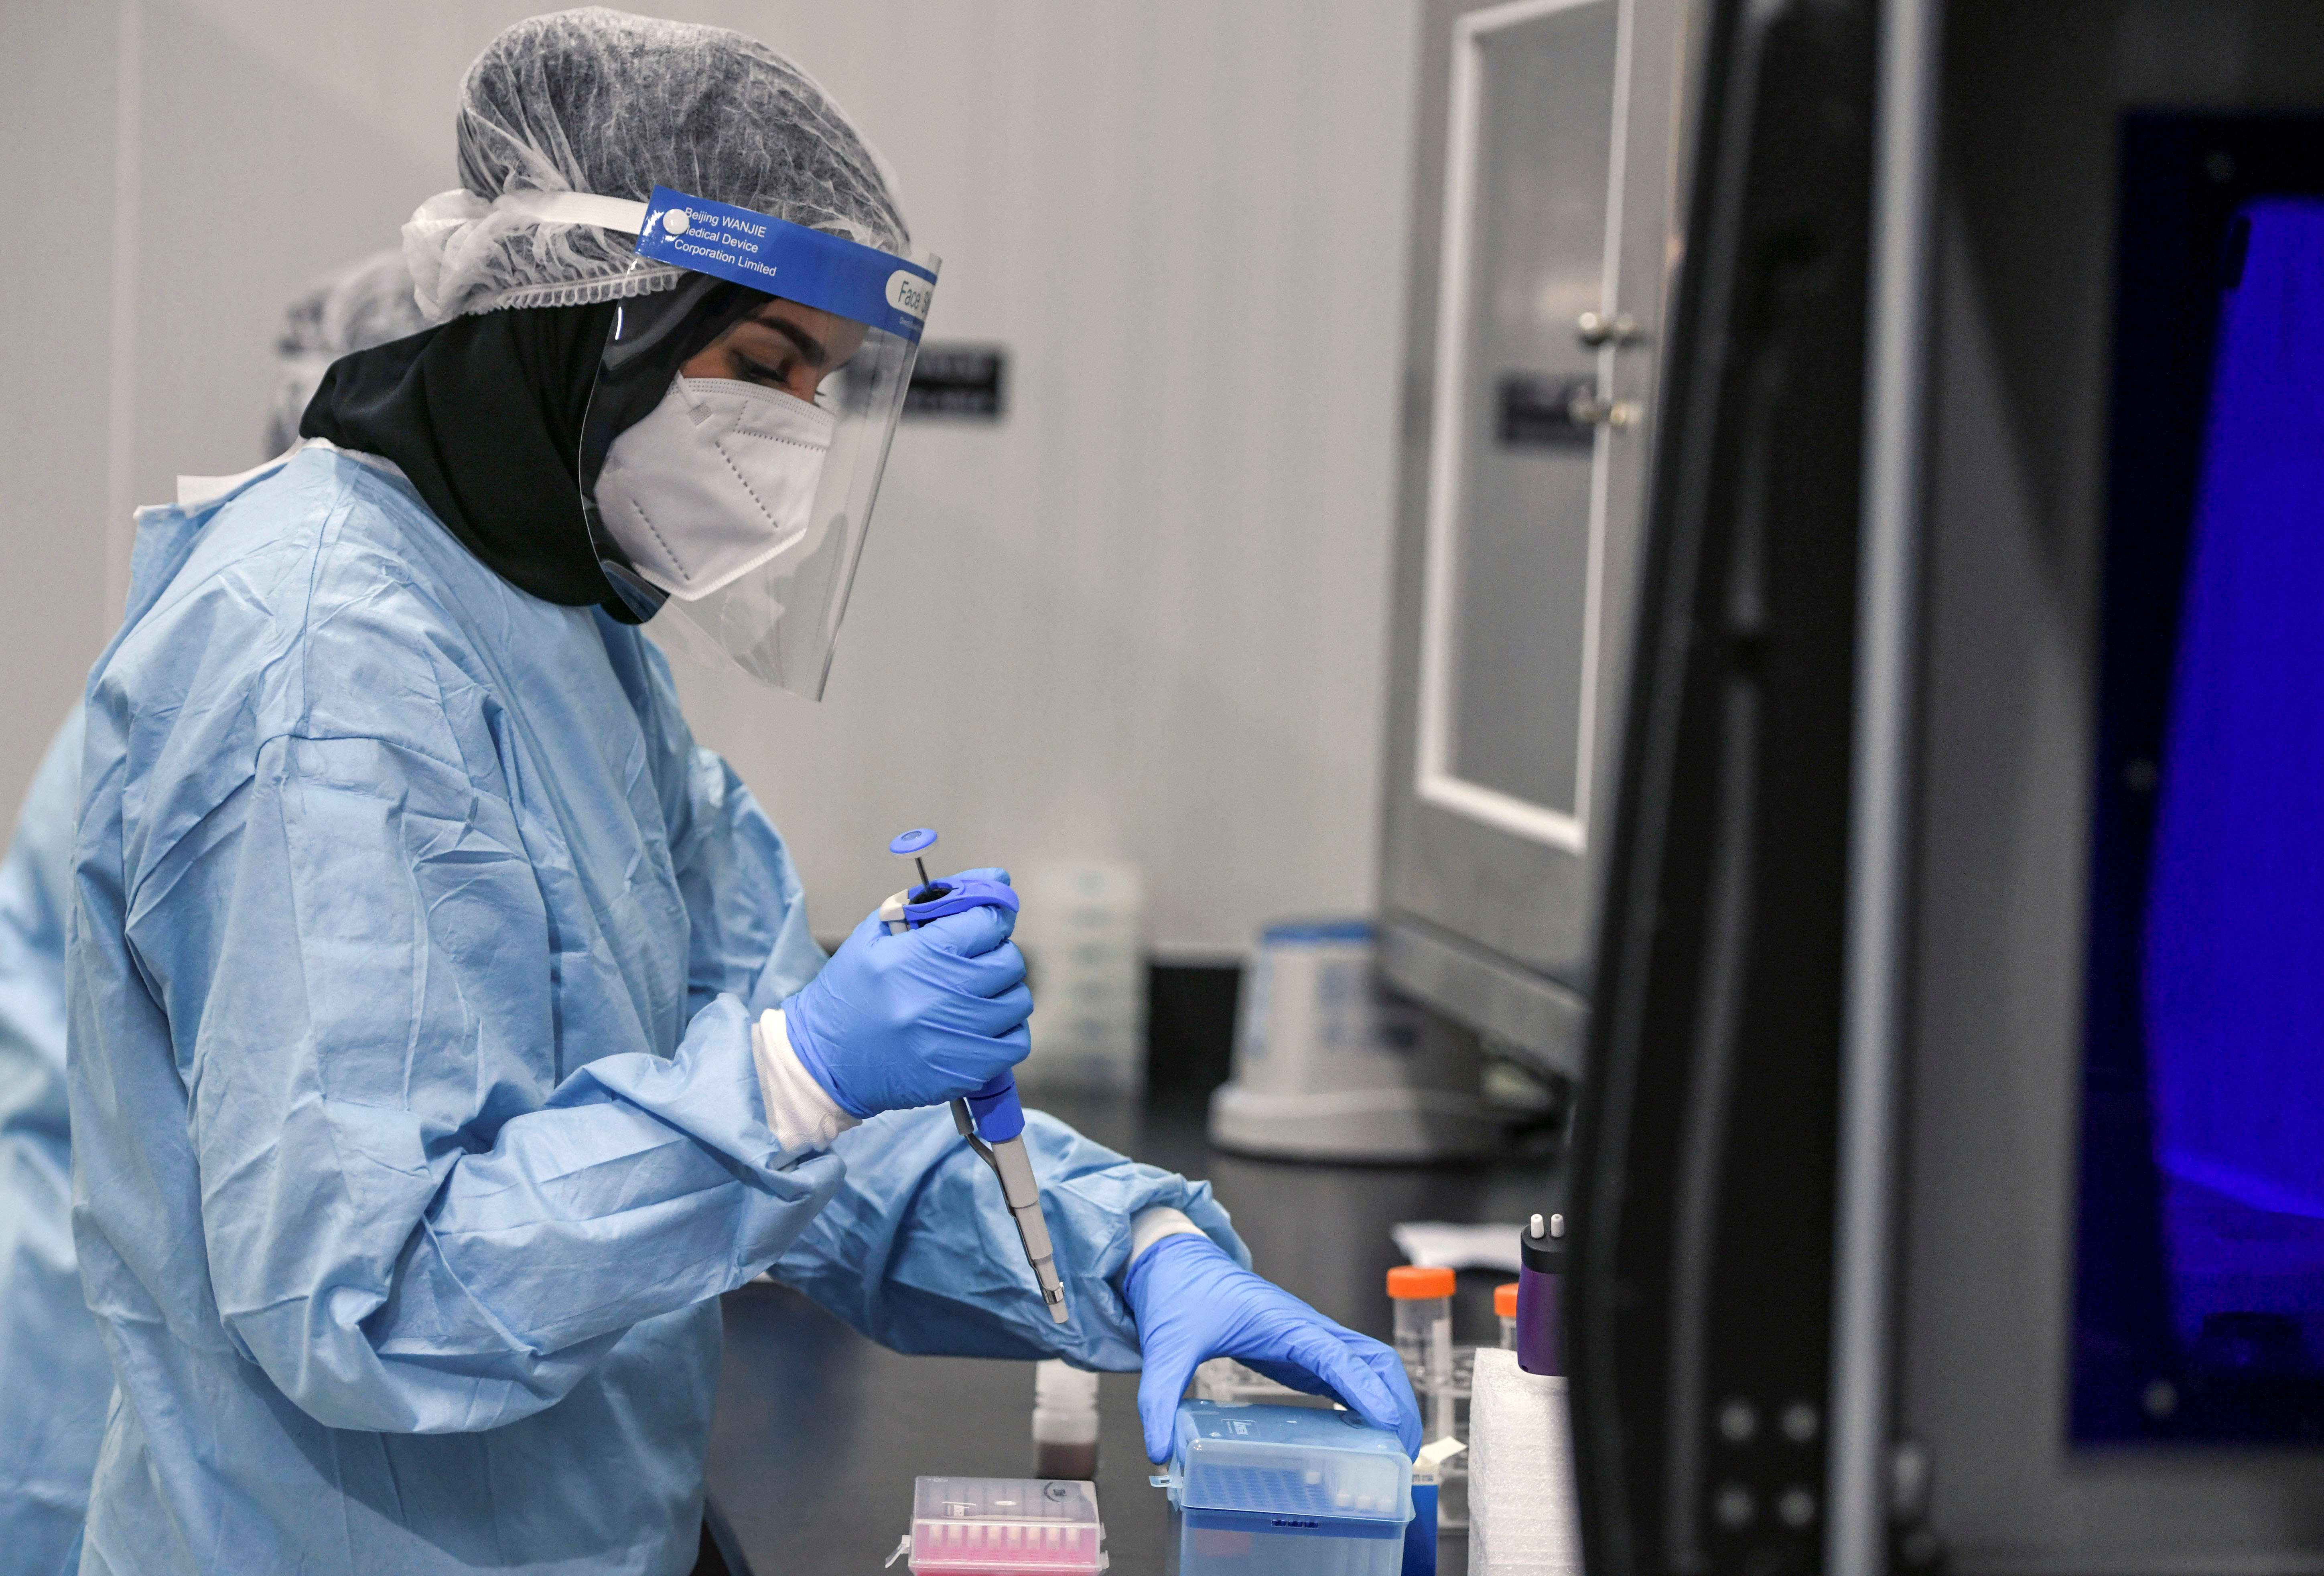 A medical worker wearing protective suit and face shield carries out tests at the Biogenix Laboratories, which performs COVID-19 detection tests, in Masdar City, Abu Dhabi, United Arab Emirates, October 6, 2020. Picture taken October 6, 2020. REUTERS/Khushnum Bhandari. - RC2AEJ9F1STJ